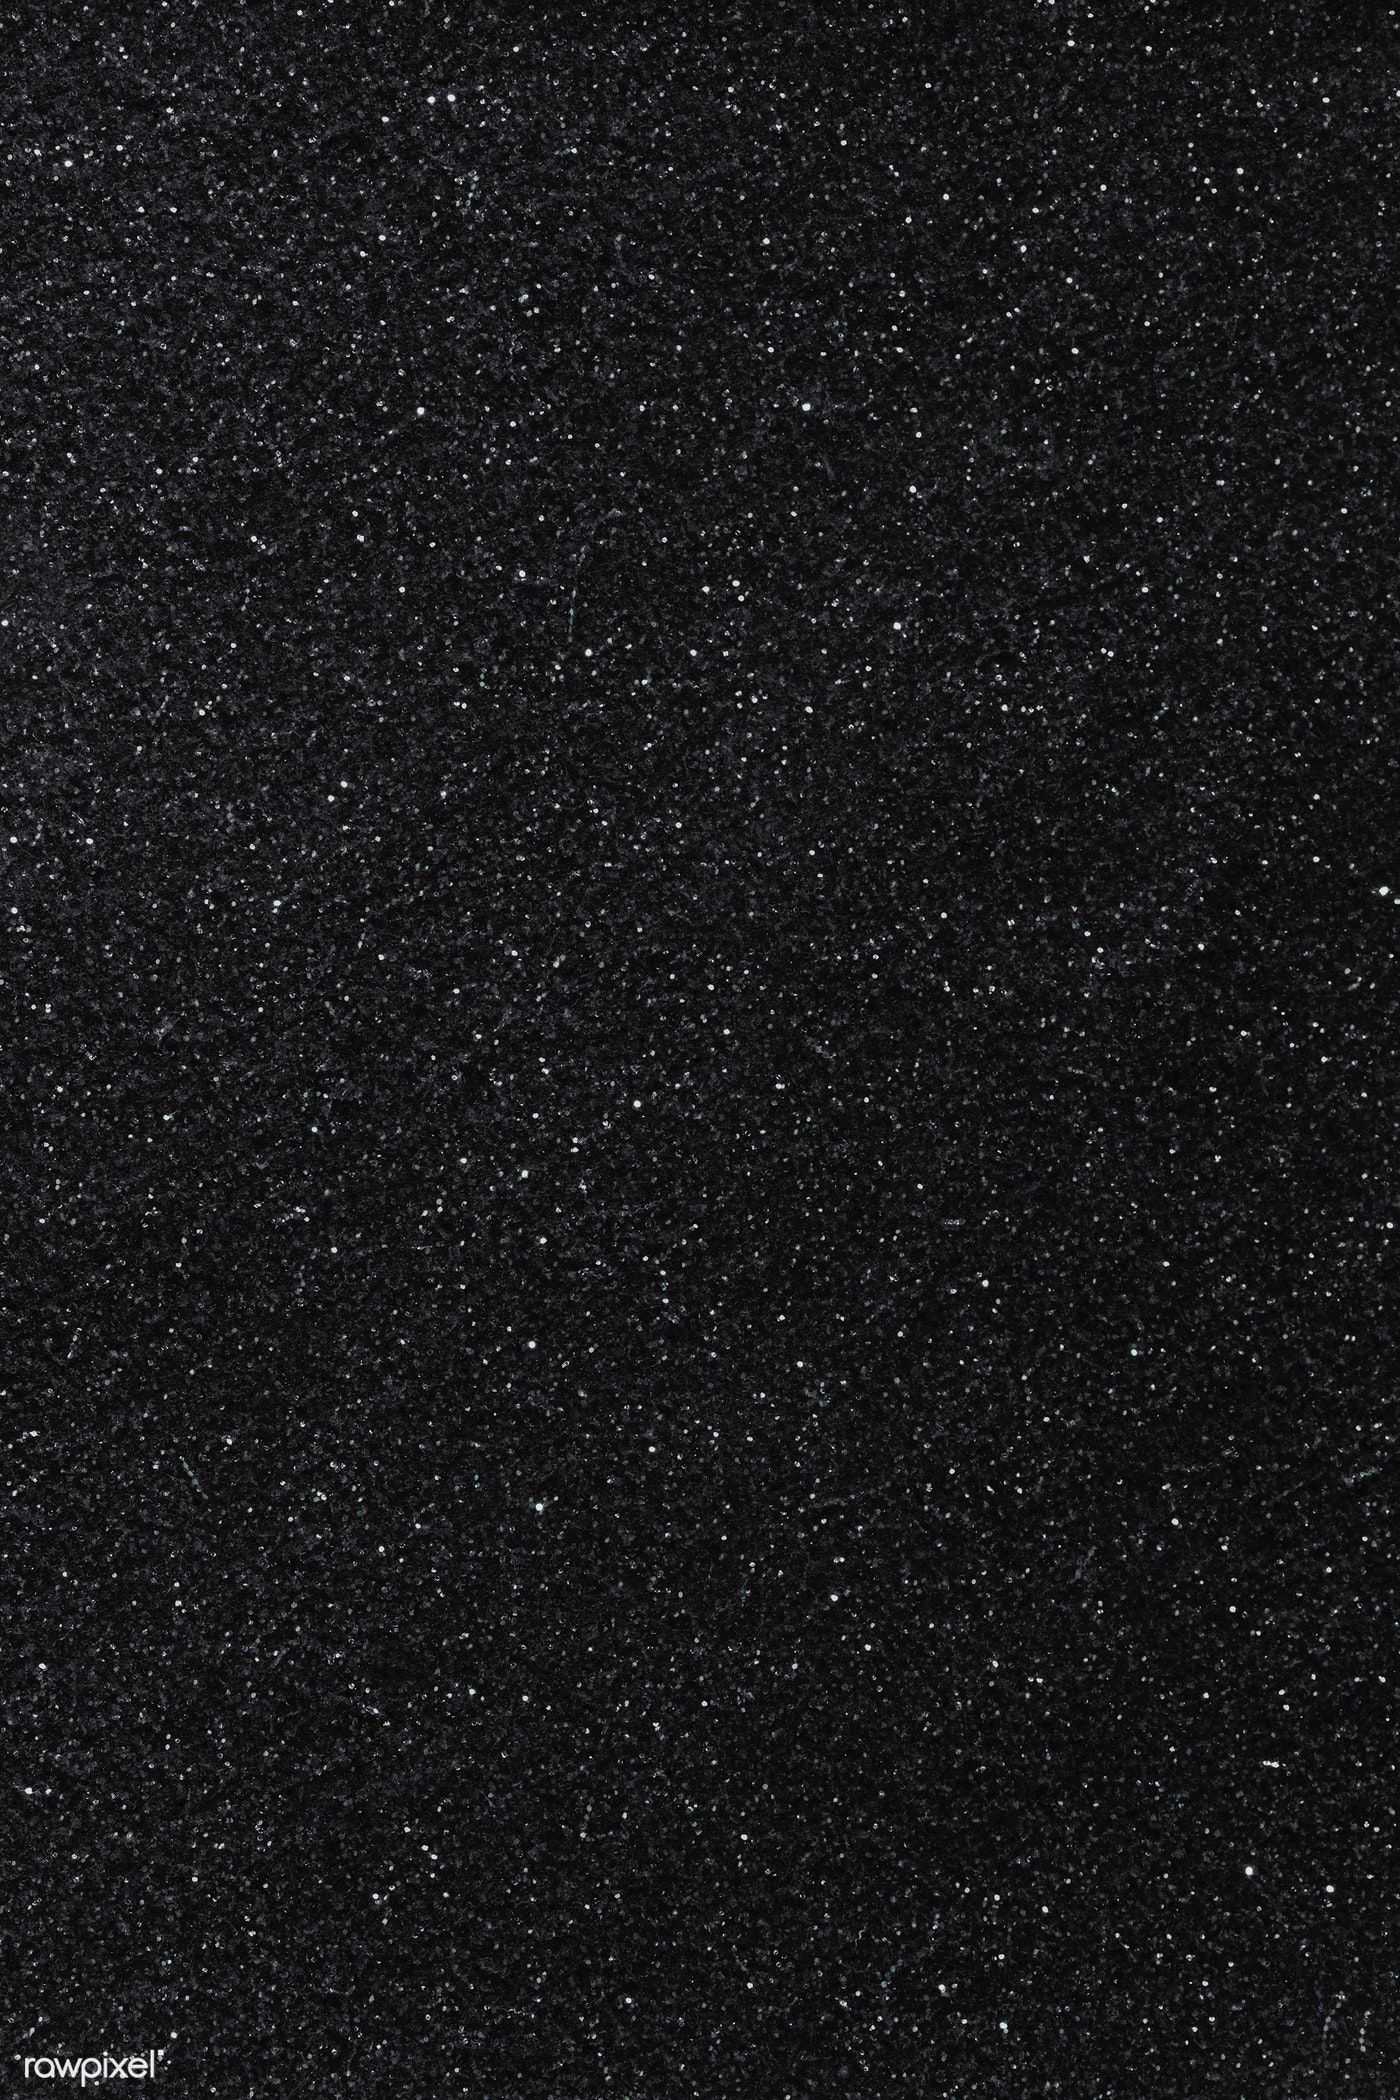 Black glittery background free image by